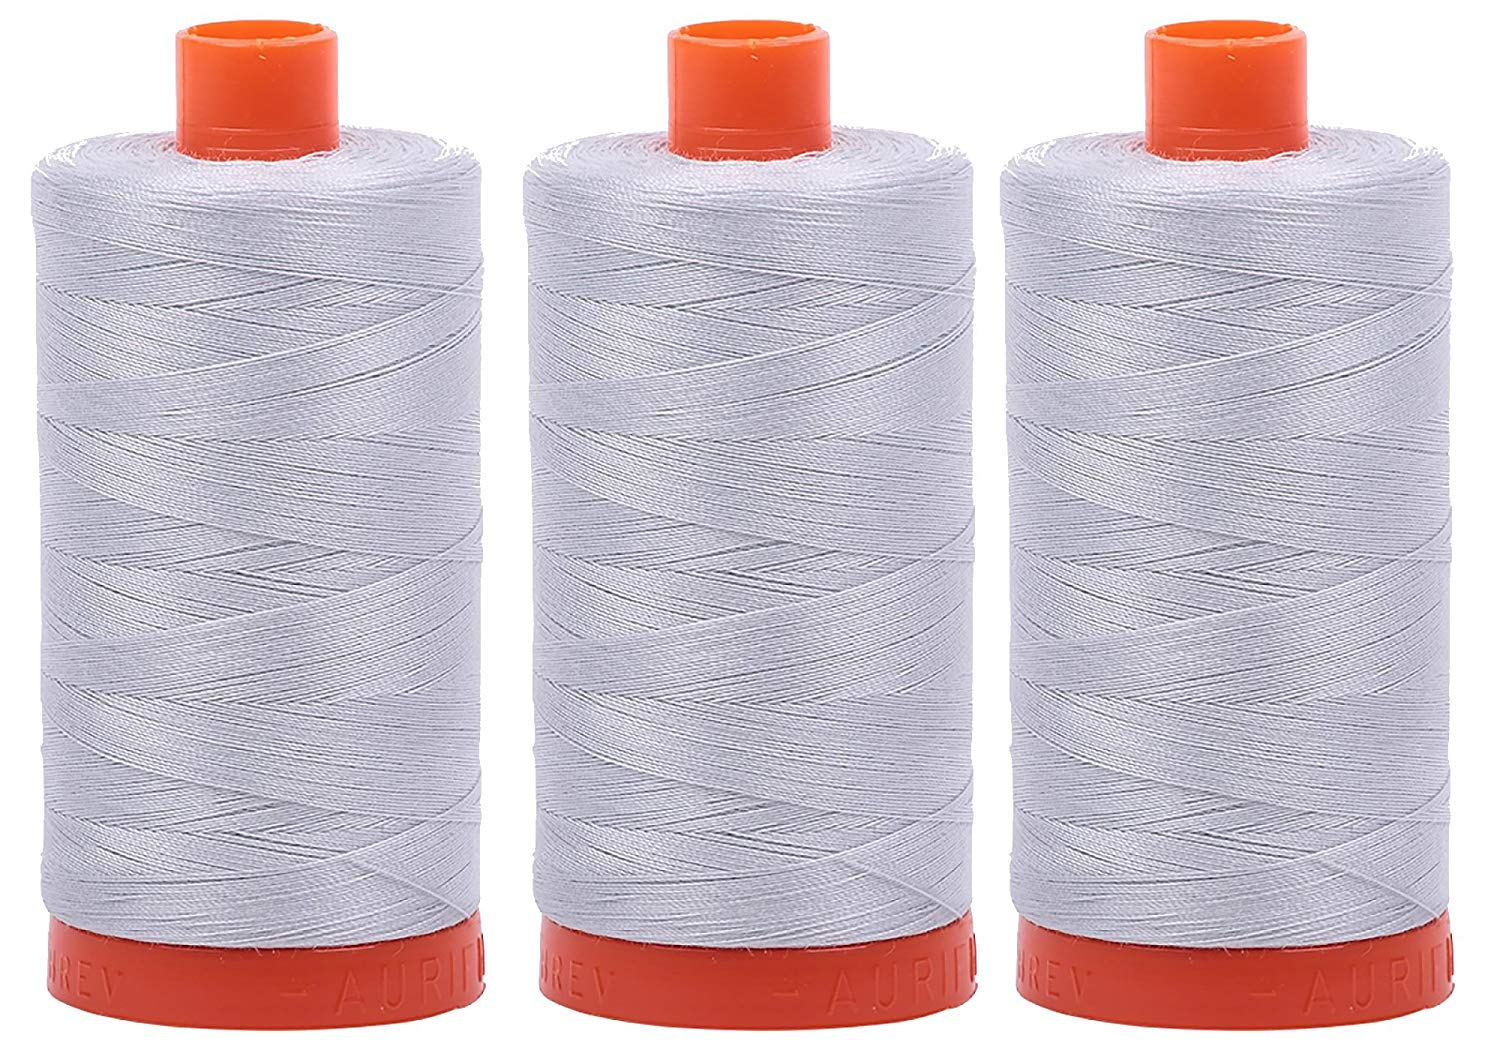 Aurifil Mako 50 wt Cotton Thread - Dove (2600) - Bundle of 3